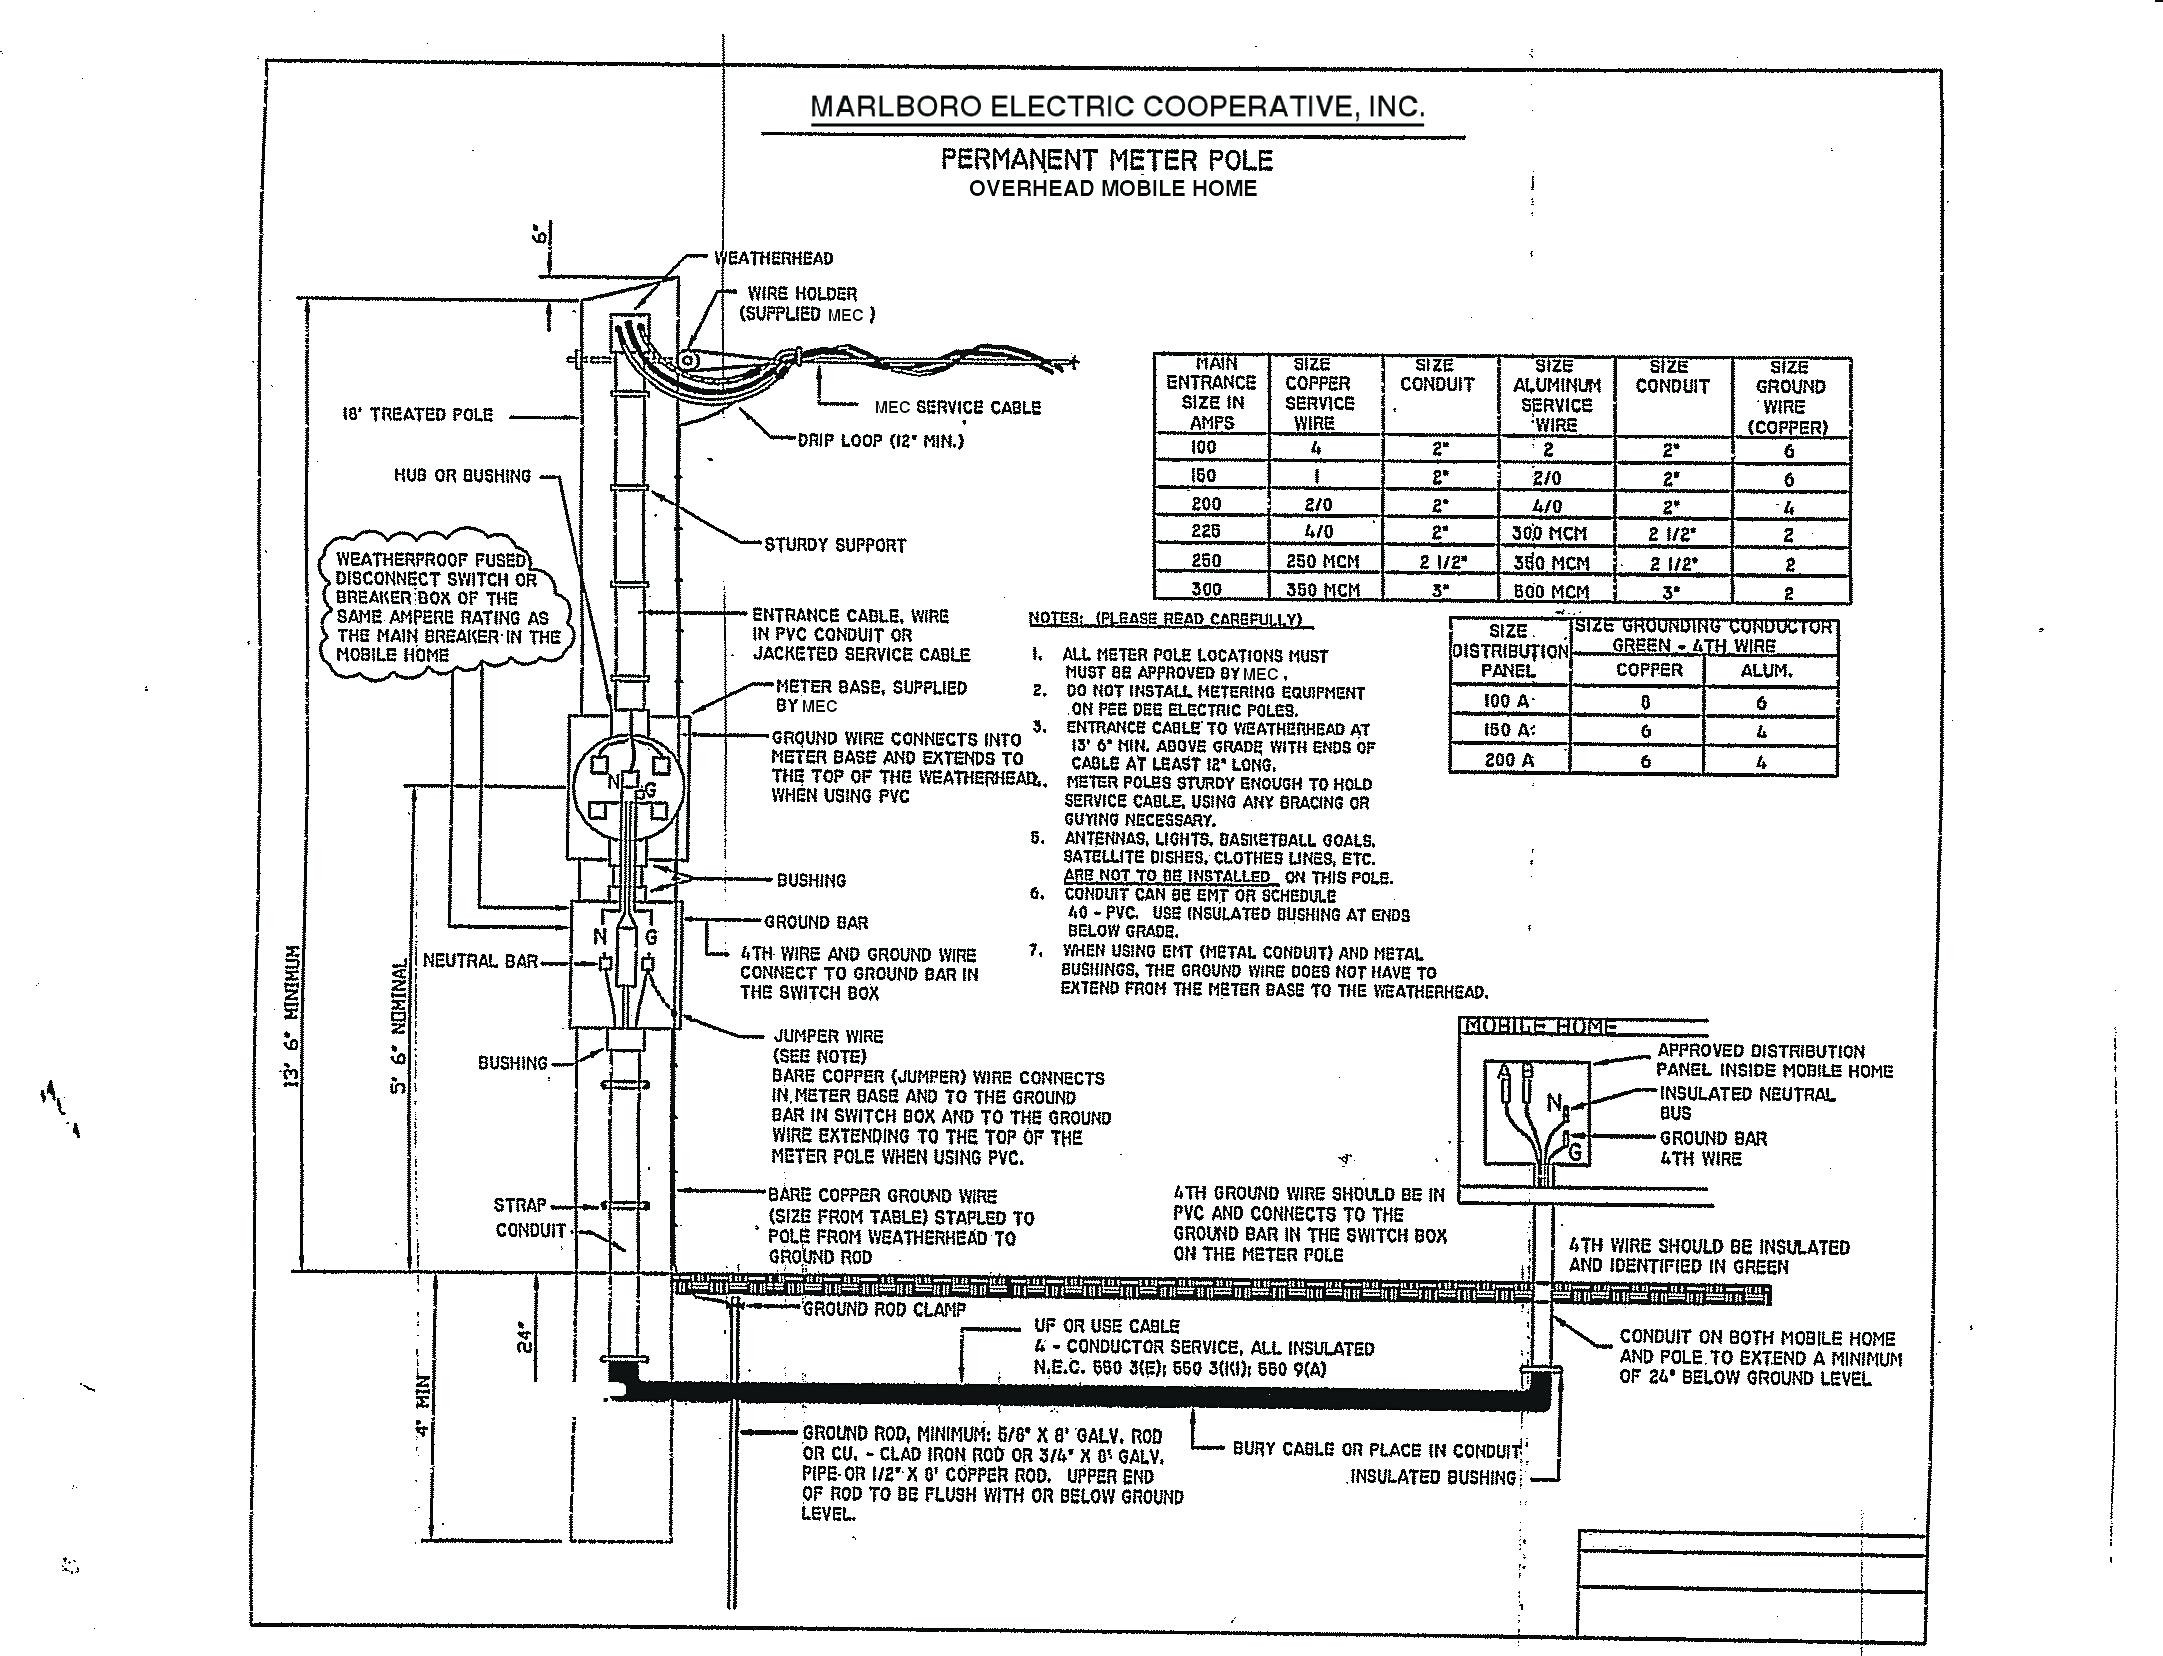 Mobile Home Wiring Diagram Oakwood Mobile Home Wiring Diagram Tent Trailer Diagrams Intertherm Of Mobile Home Wiring Diagram